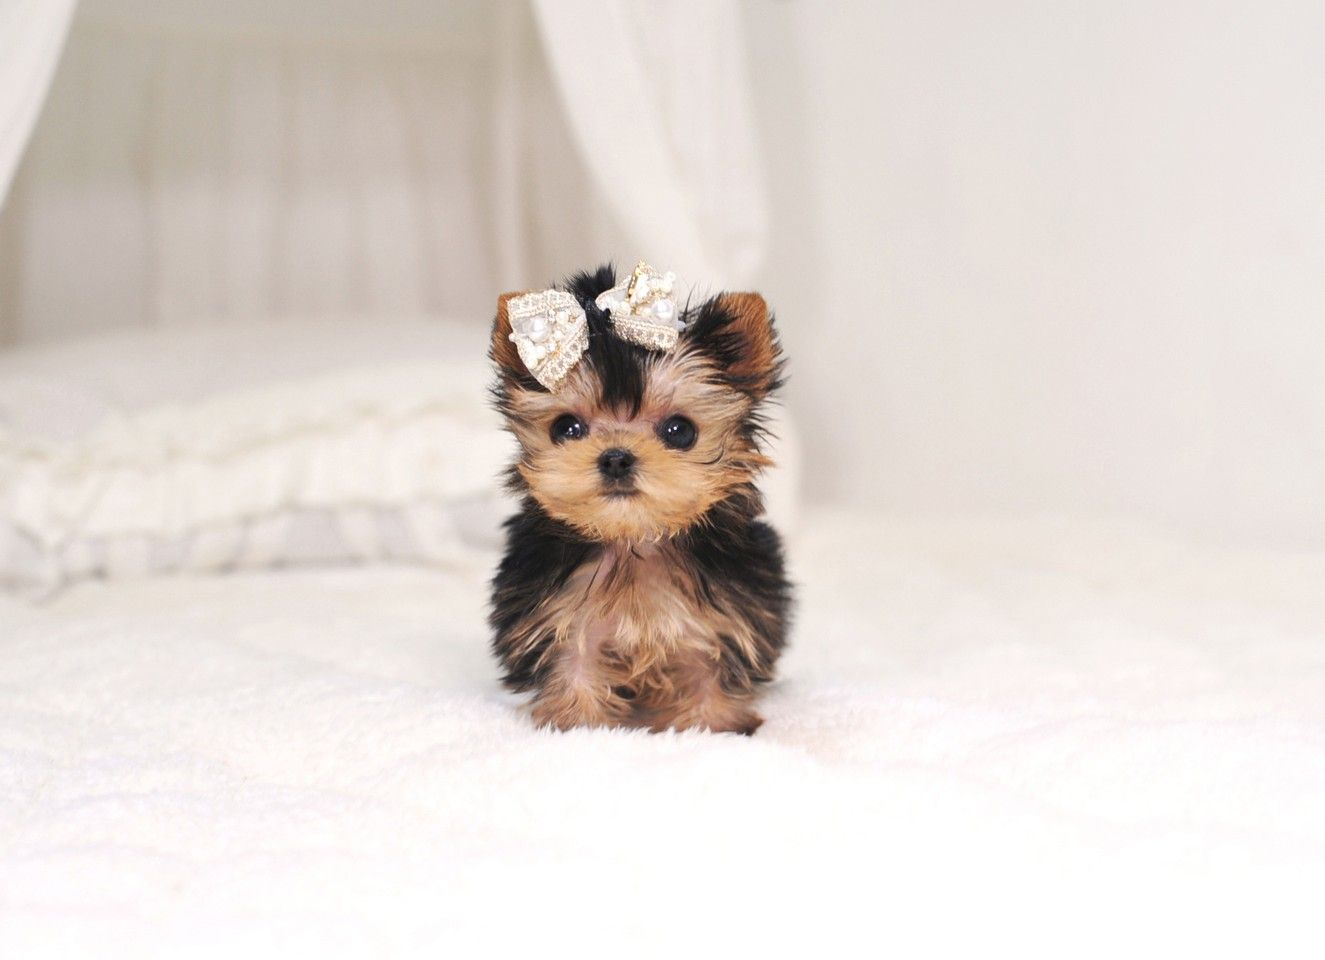 If You Want To See More Beautiful Backgrounds Click On The Link Ogq Backgrounds Hd Cute Baby Dogs Cute Puppies Cute Dogs